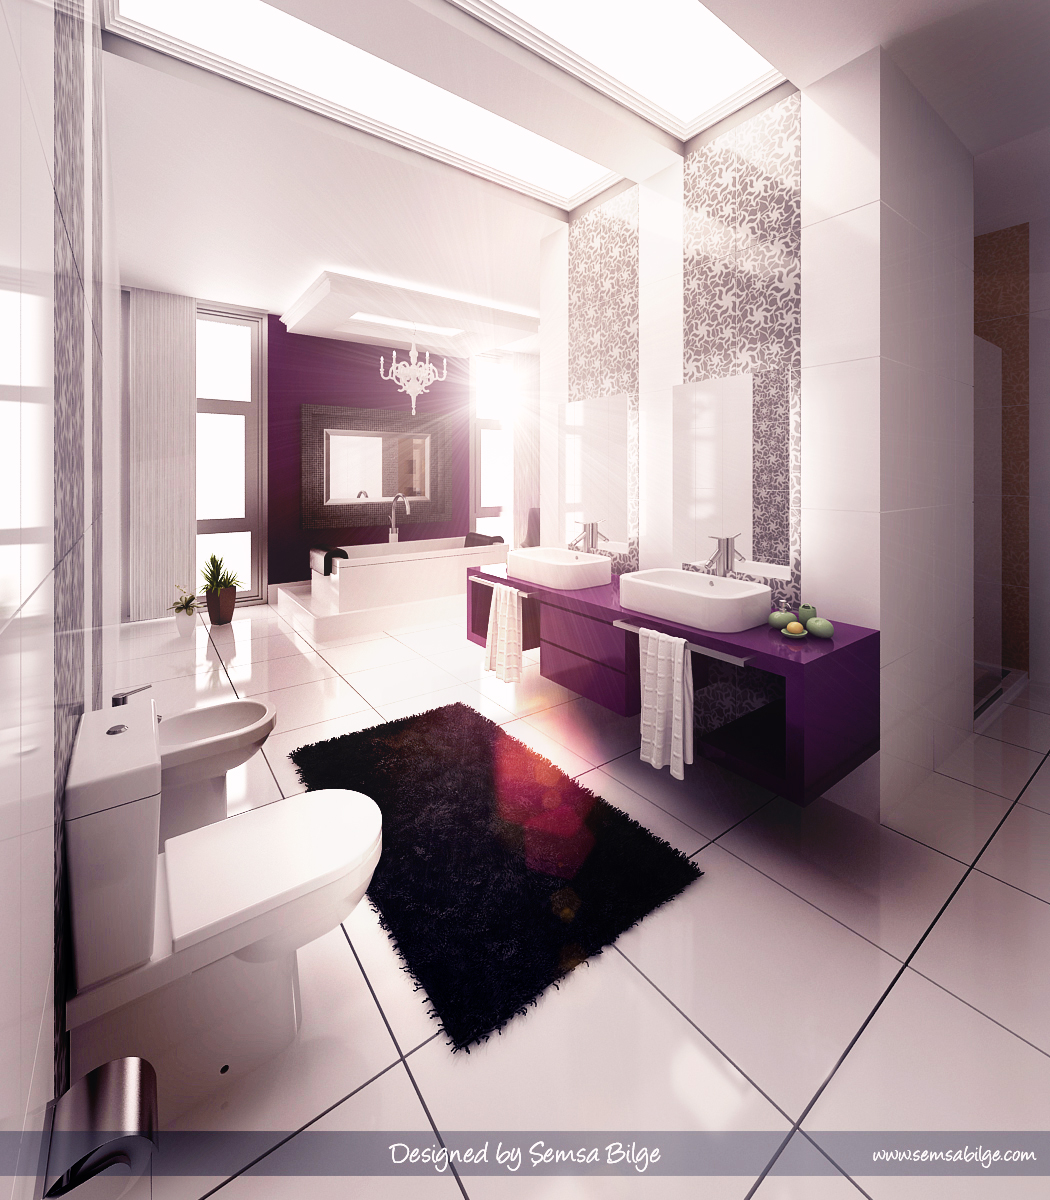 Beautiful bathroom designs ideas interior design Pretty bathroom ideas